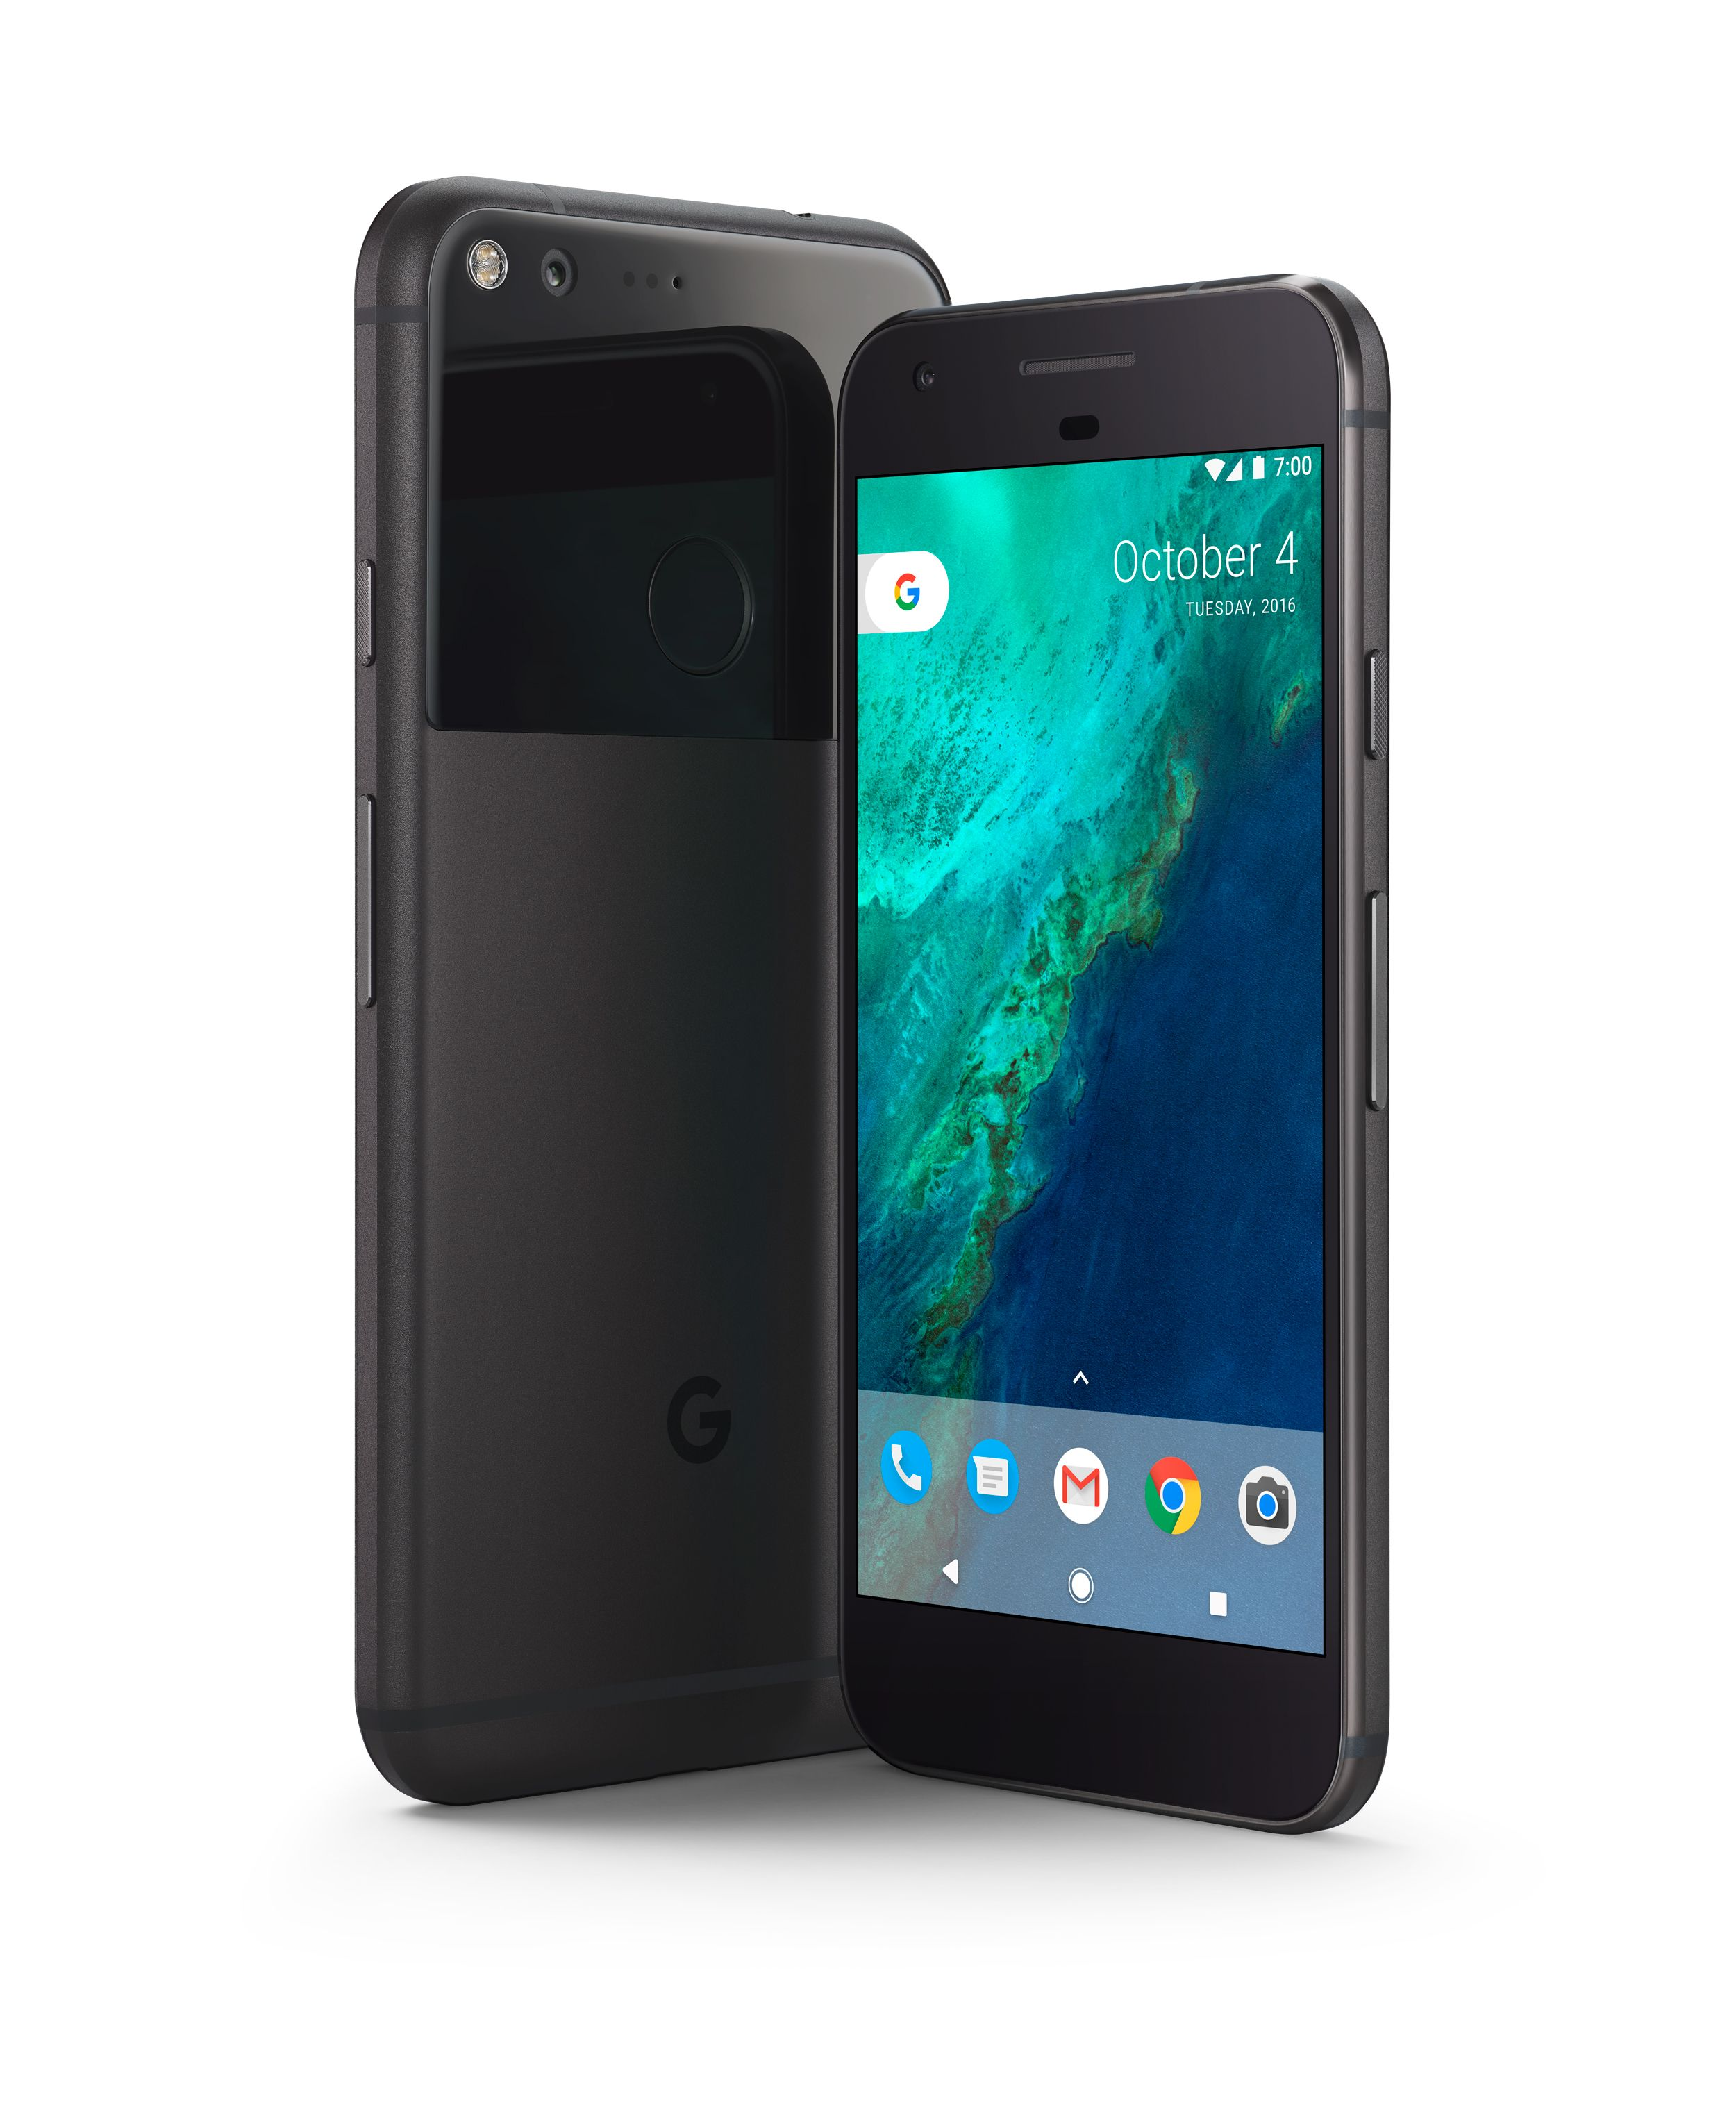 The Google Pixel 3 is finally launching